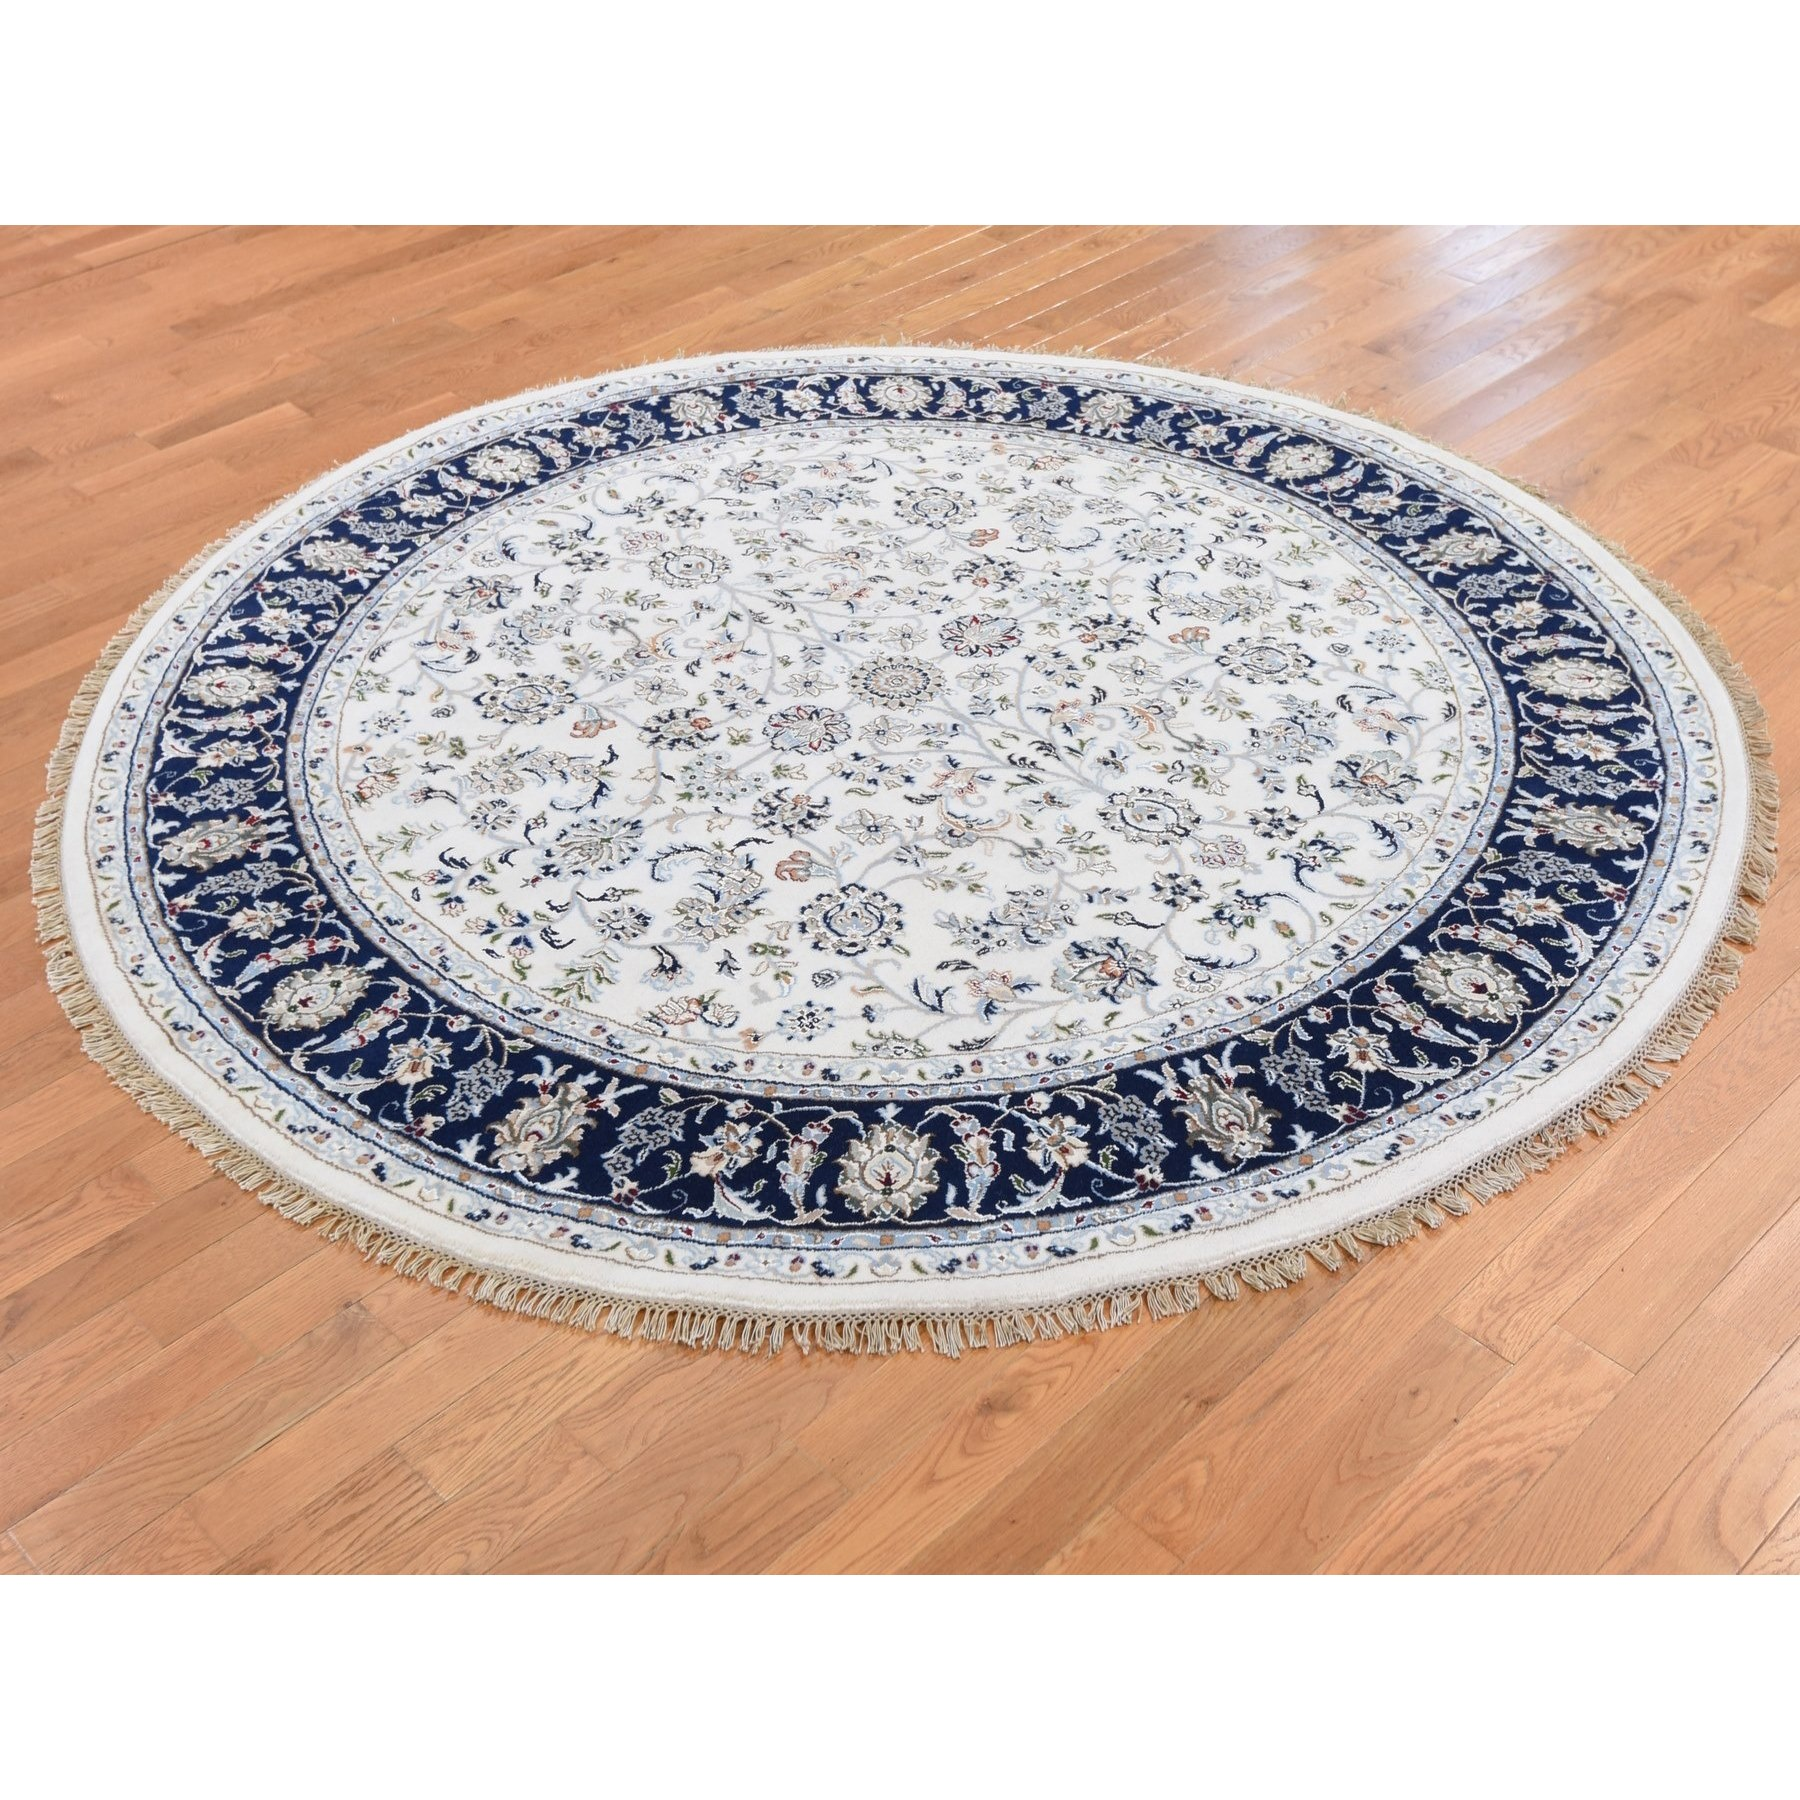 6'x6' Nain Wool and Silk 250 KPSI All Over Design Hand Knotted Ivory Round Oriental Rug